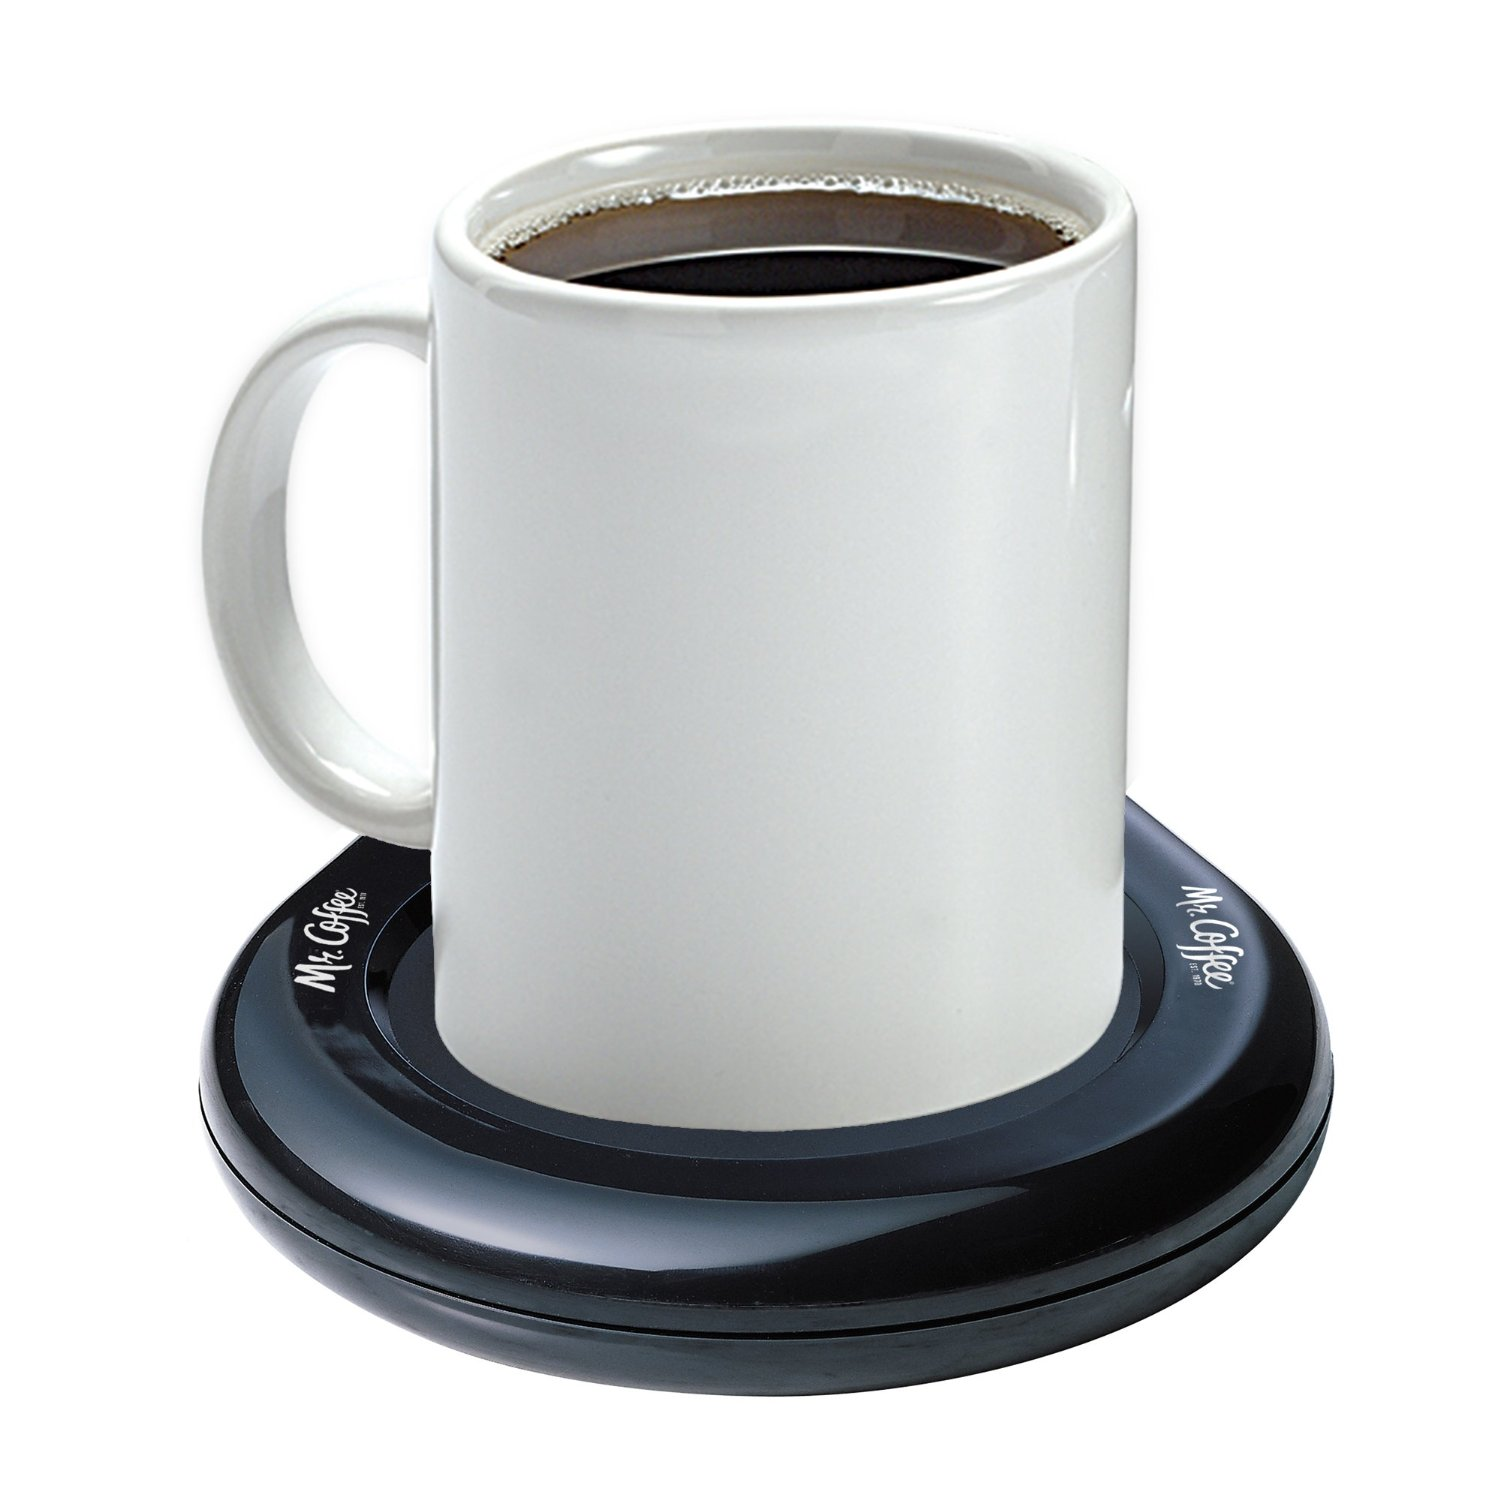 sc 1 st  Spoonacular & Prevent Cold Coffee with Amazonu0027s Best Coffee Cup Warmer